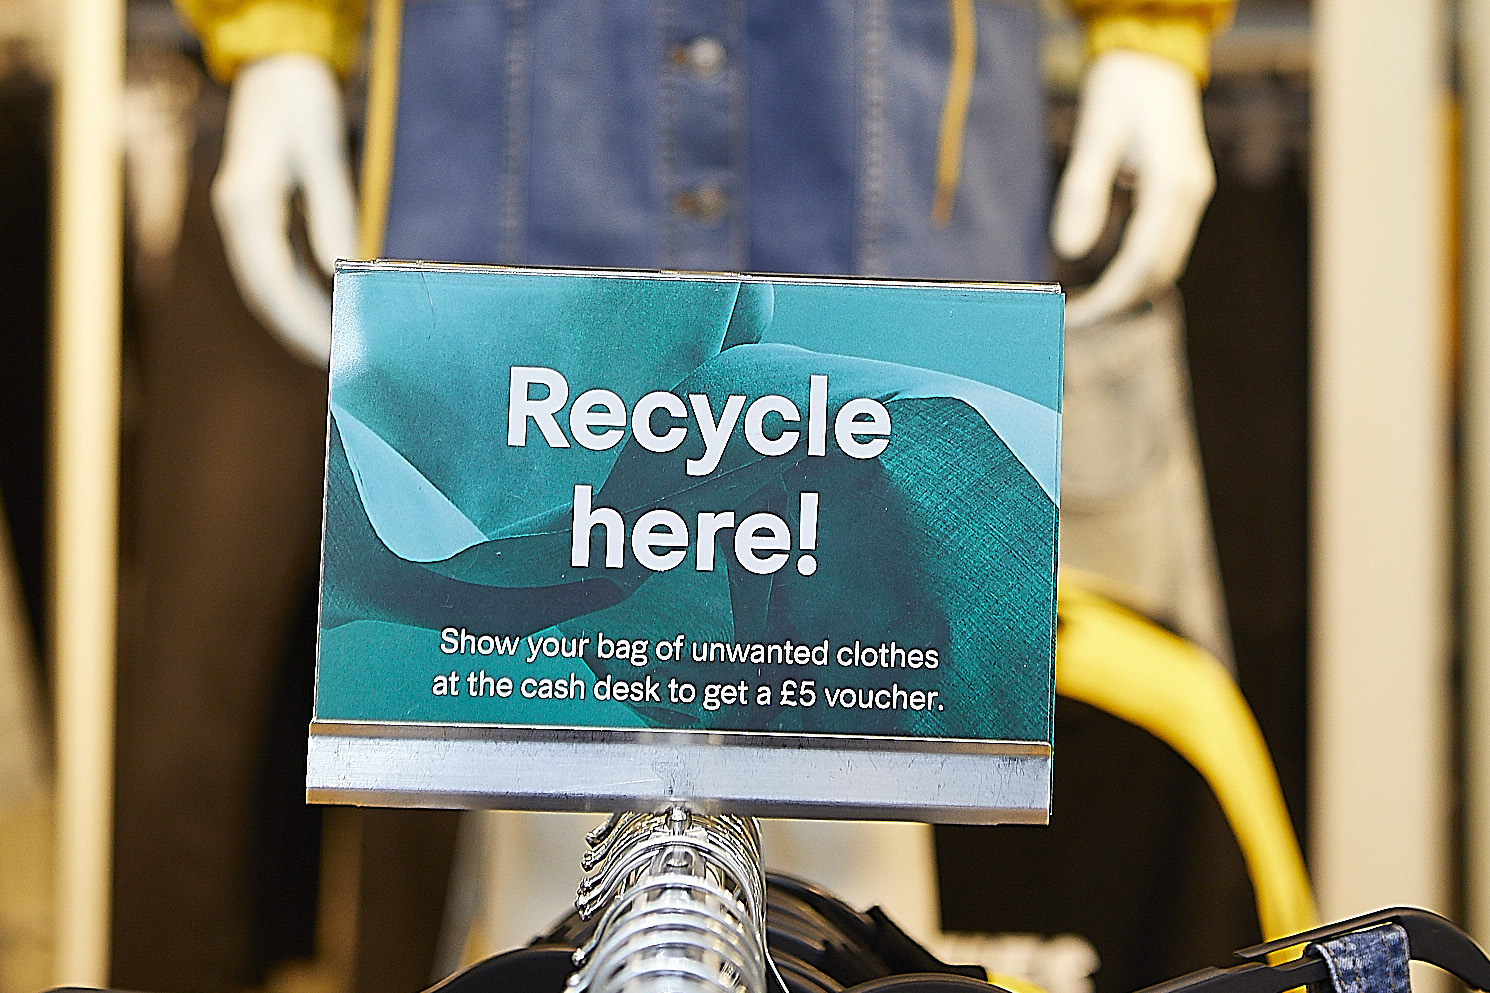 The war on waste: fashion wakes up to recycling